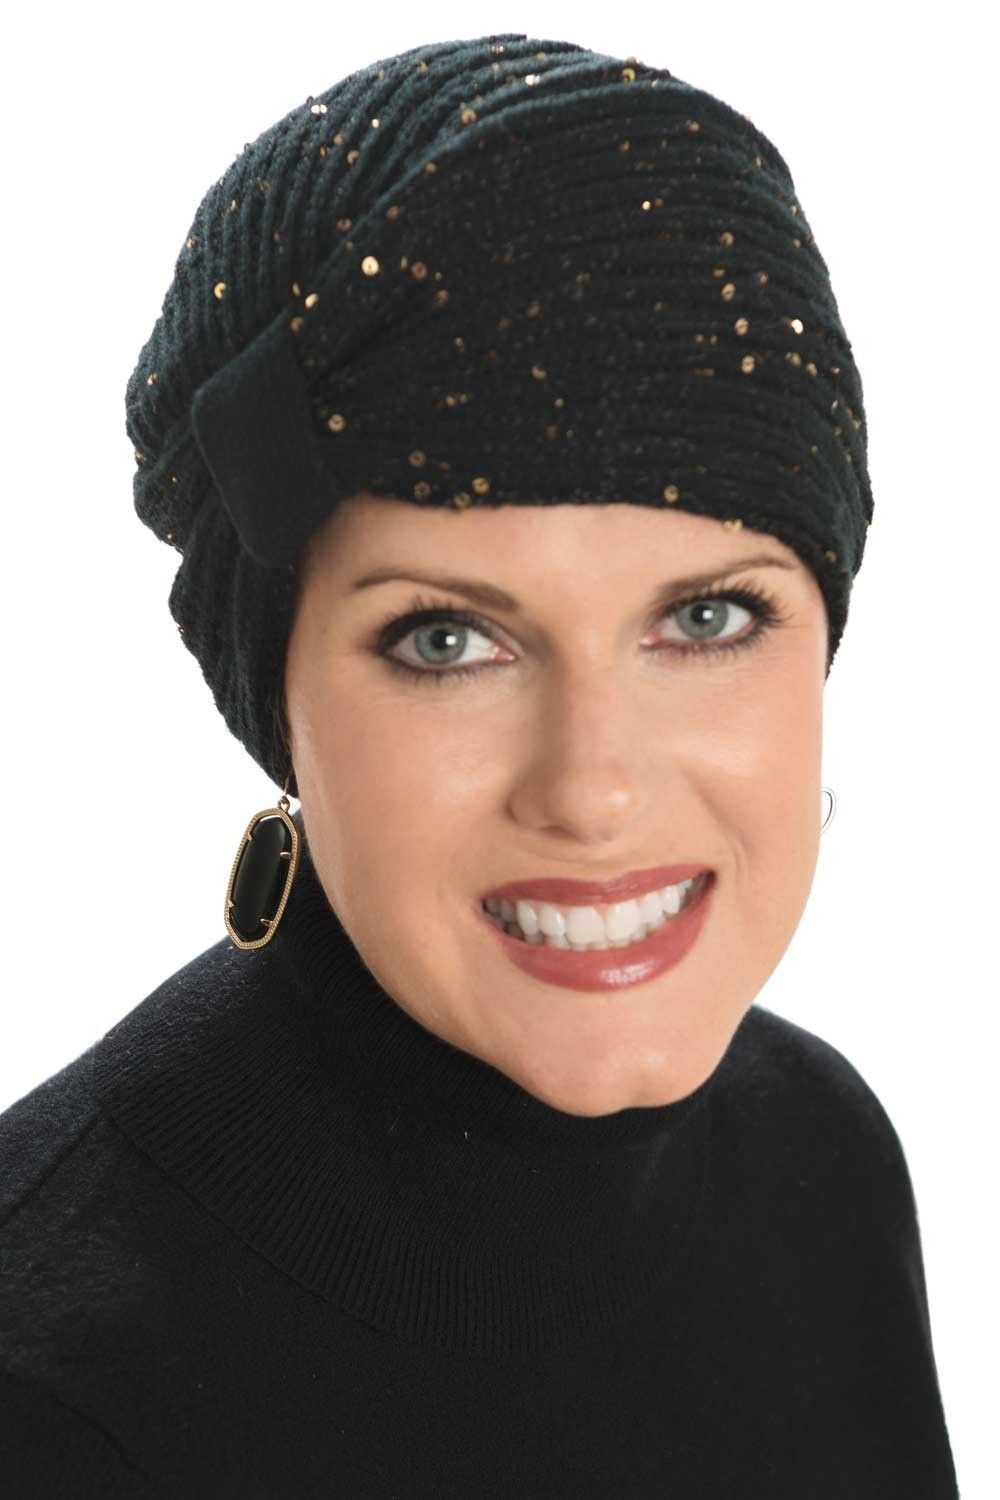 d32ca135ca9b5 Sparkle Turban - Holiday Headwear for Women - Cancer Hats